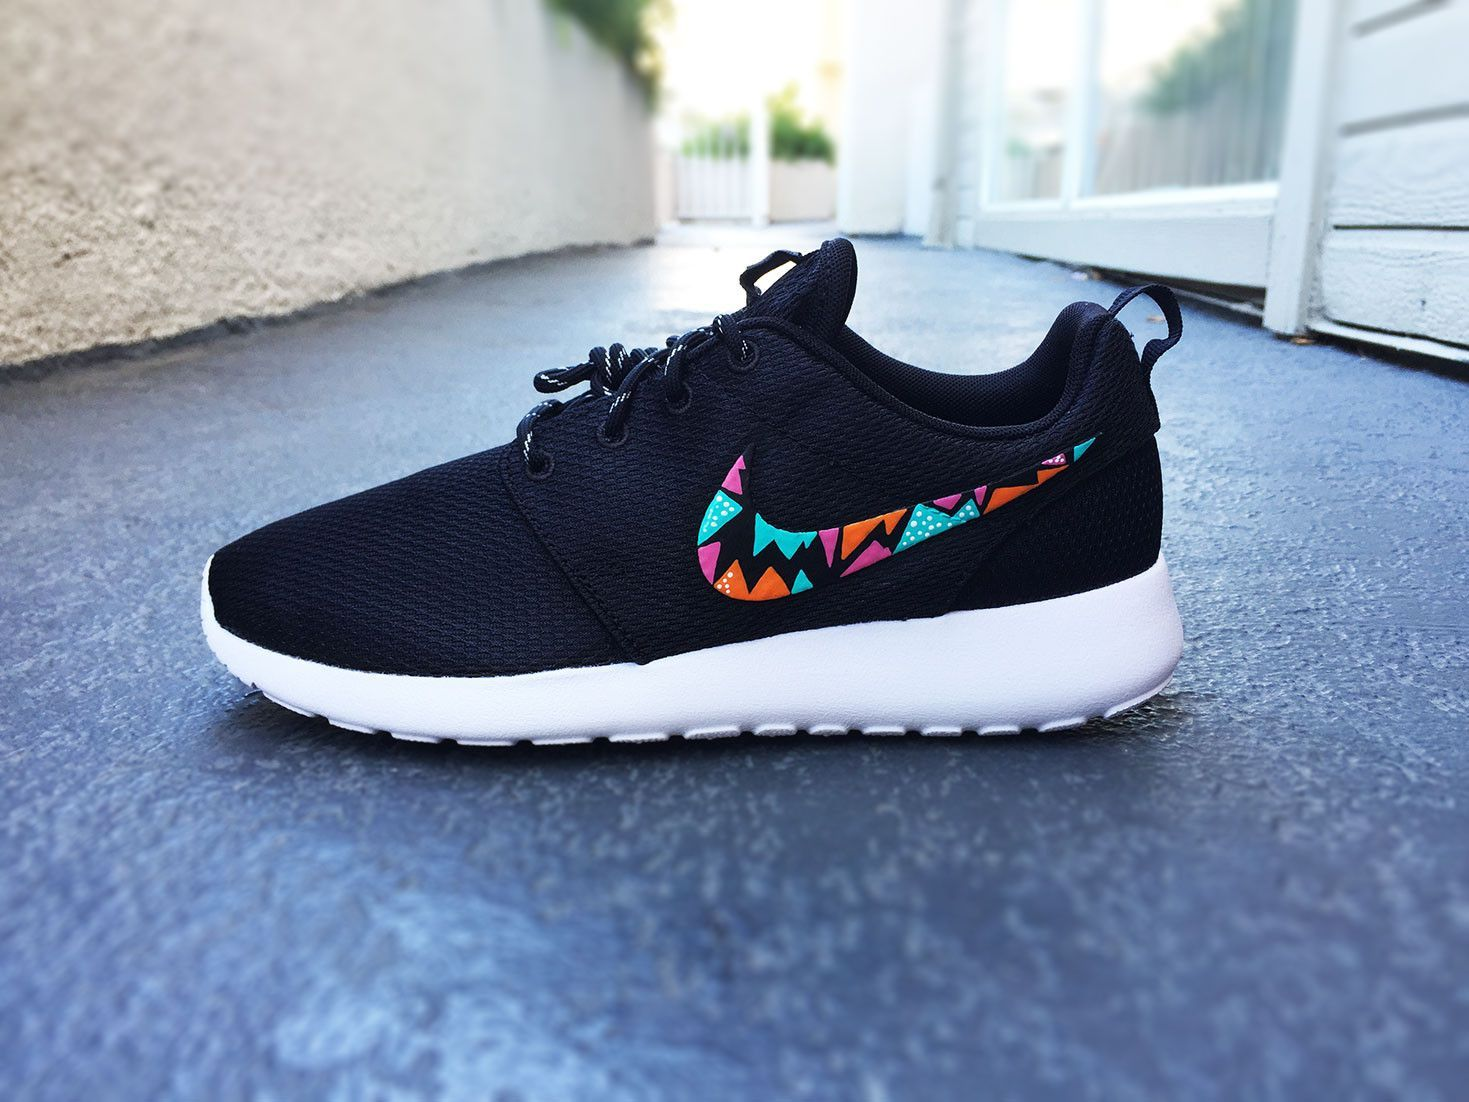 low priced 57dde 3c71a Womens Custom Nike Roshe Run sneakers, triangle tribal design, hot pink,  teal and orange, trendy fashion design, cute womens shoes